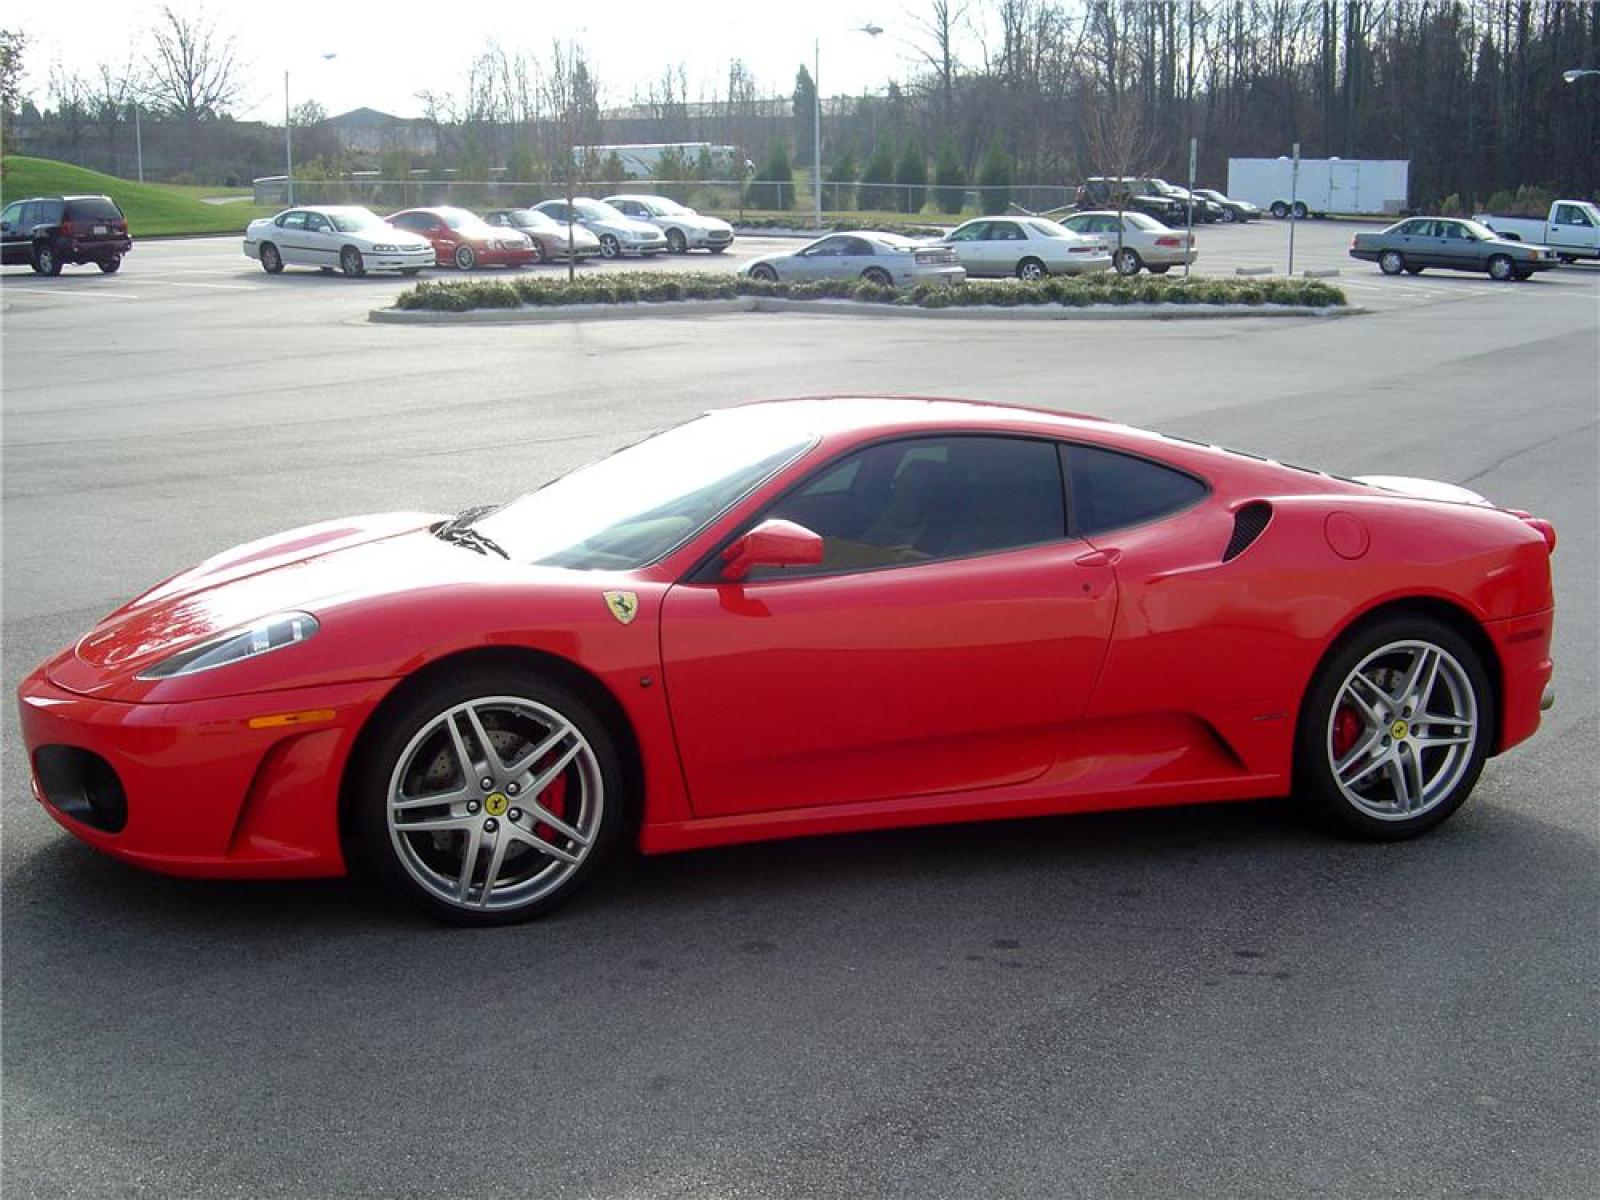 2005 Ferrari F430 Information And Photos Zombiedrive